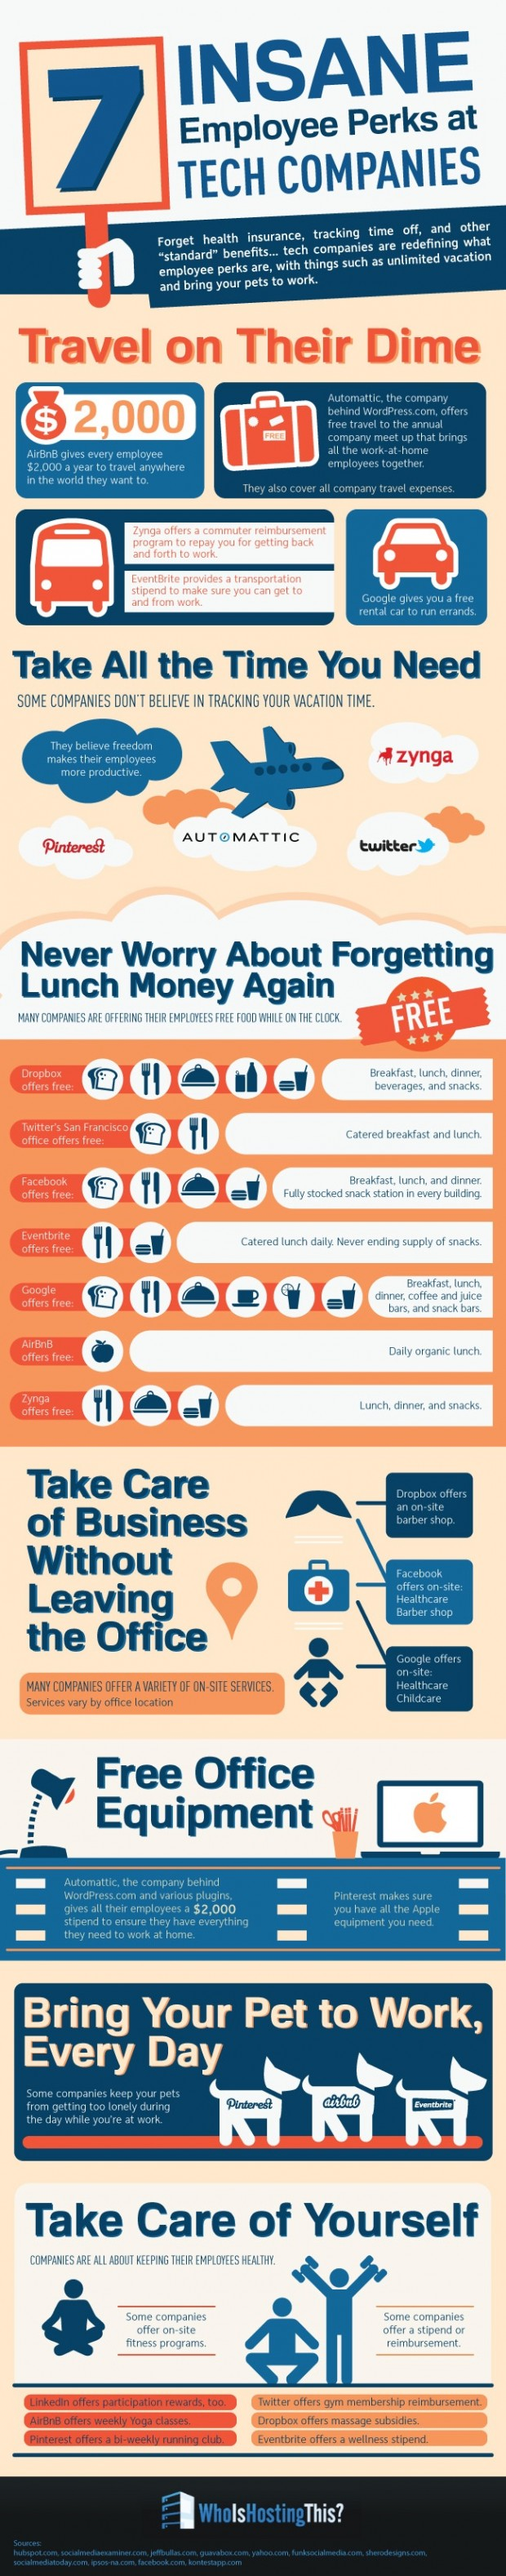 7-insane-employee-perks-at-tech-companies-infograph